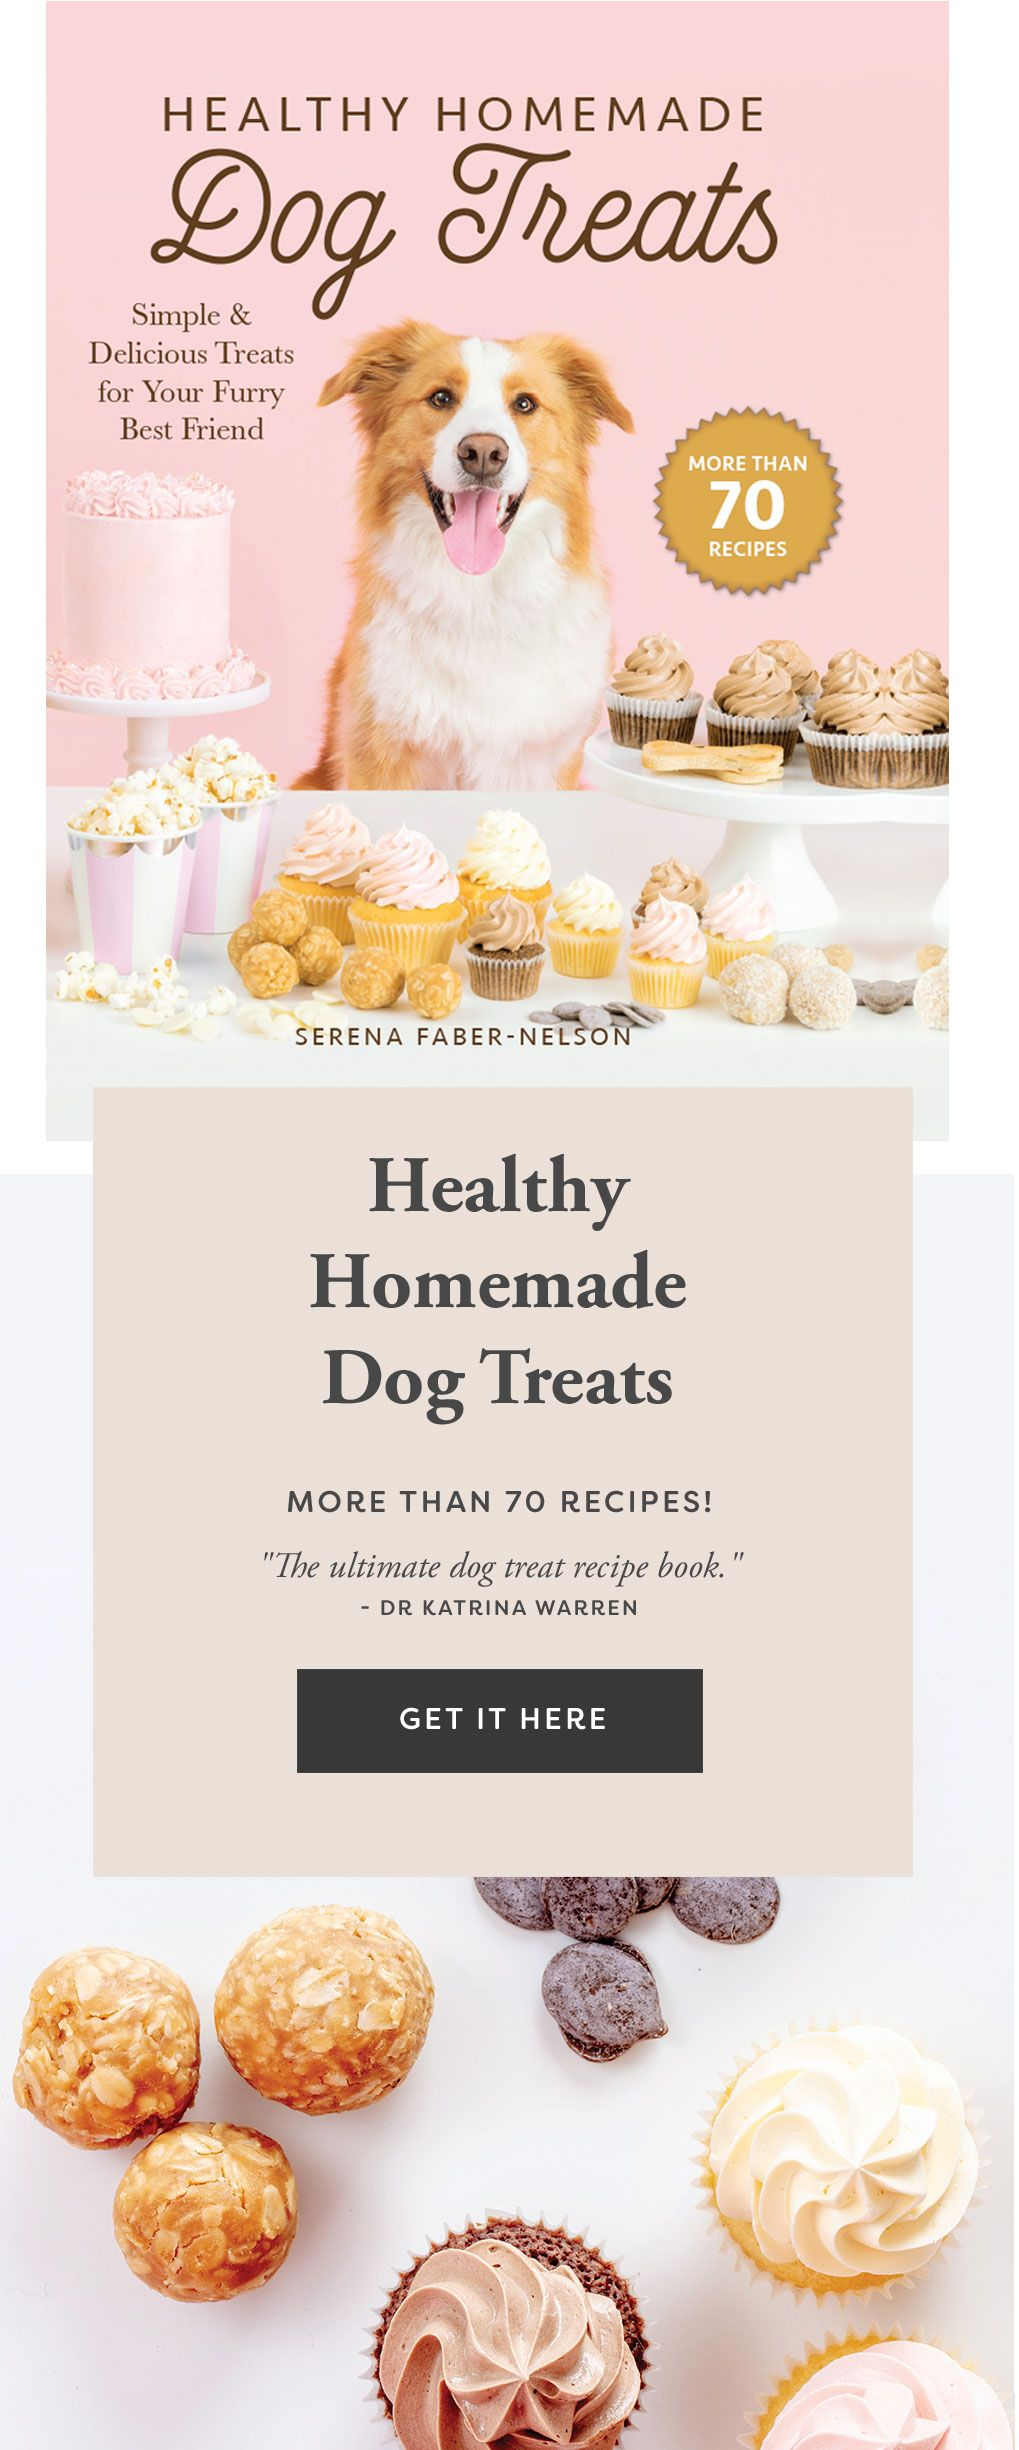 Healthy Homemade Dog Treats - Simple & Delicious Treats for Your Furry Best Friend. More than 70 Recipes!